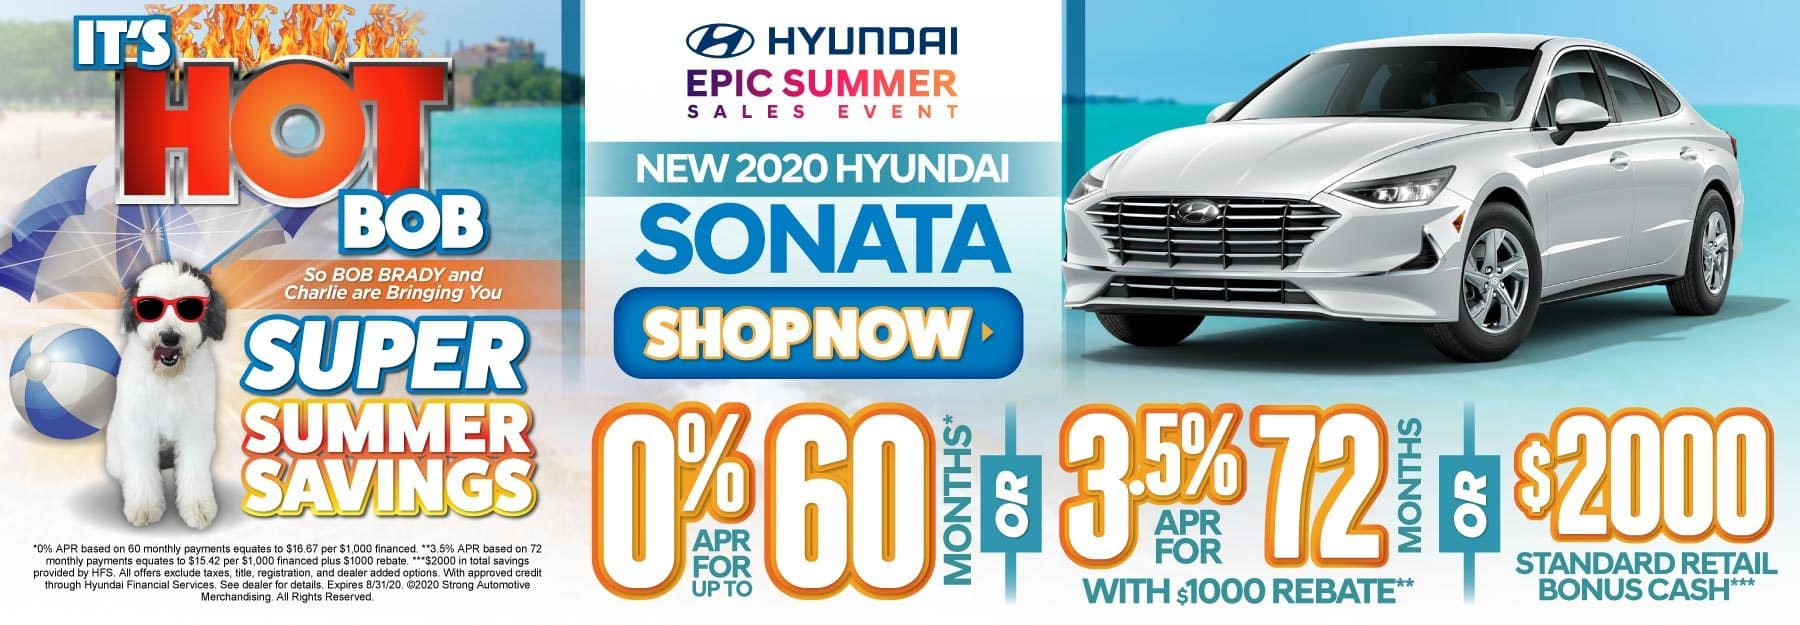 New 2020 Hyundai Sonata - 0% APR for up to 60 months or 3.5% APR for 72 months with $1000 rebate or $2000 standard retail bonus cash - Click to View Inventory